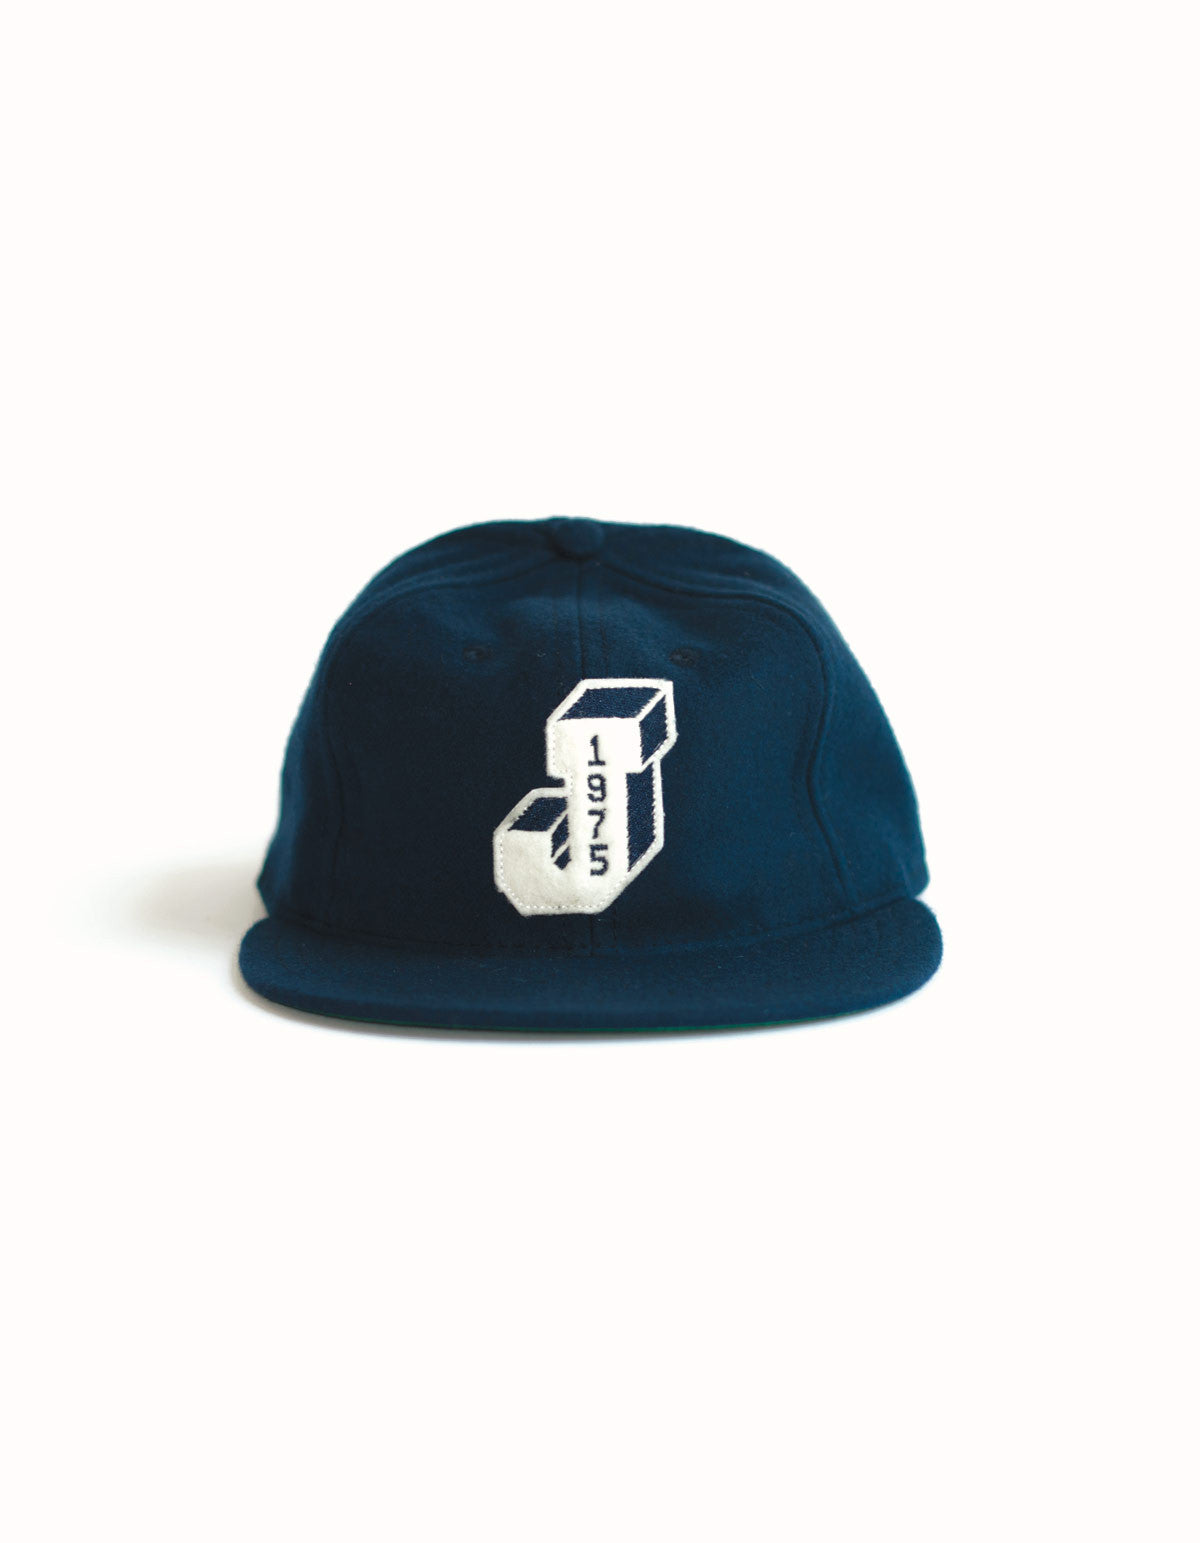 Jeffrey's Ballcap by Ebbets Field